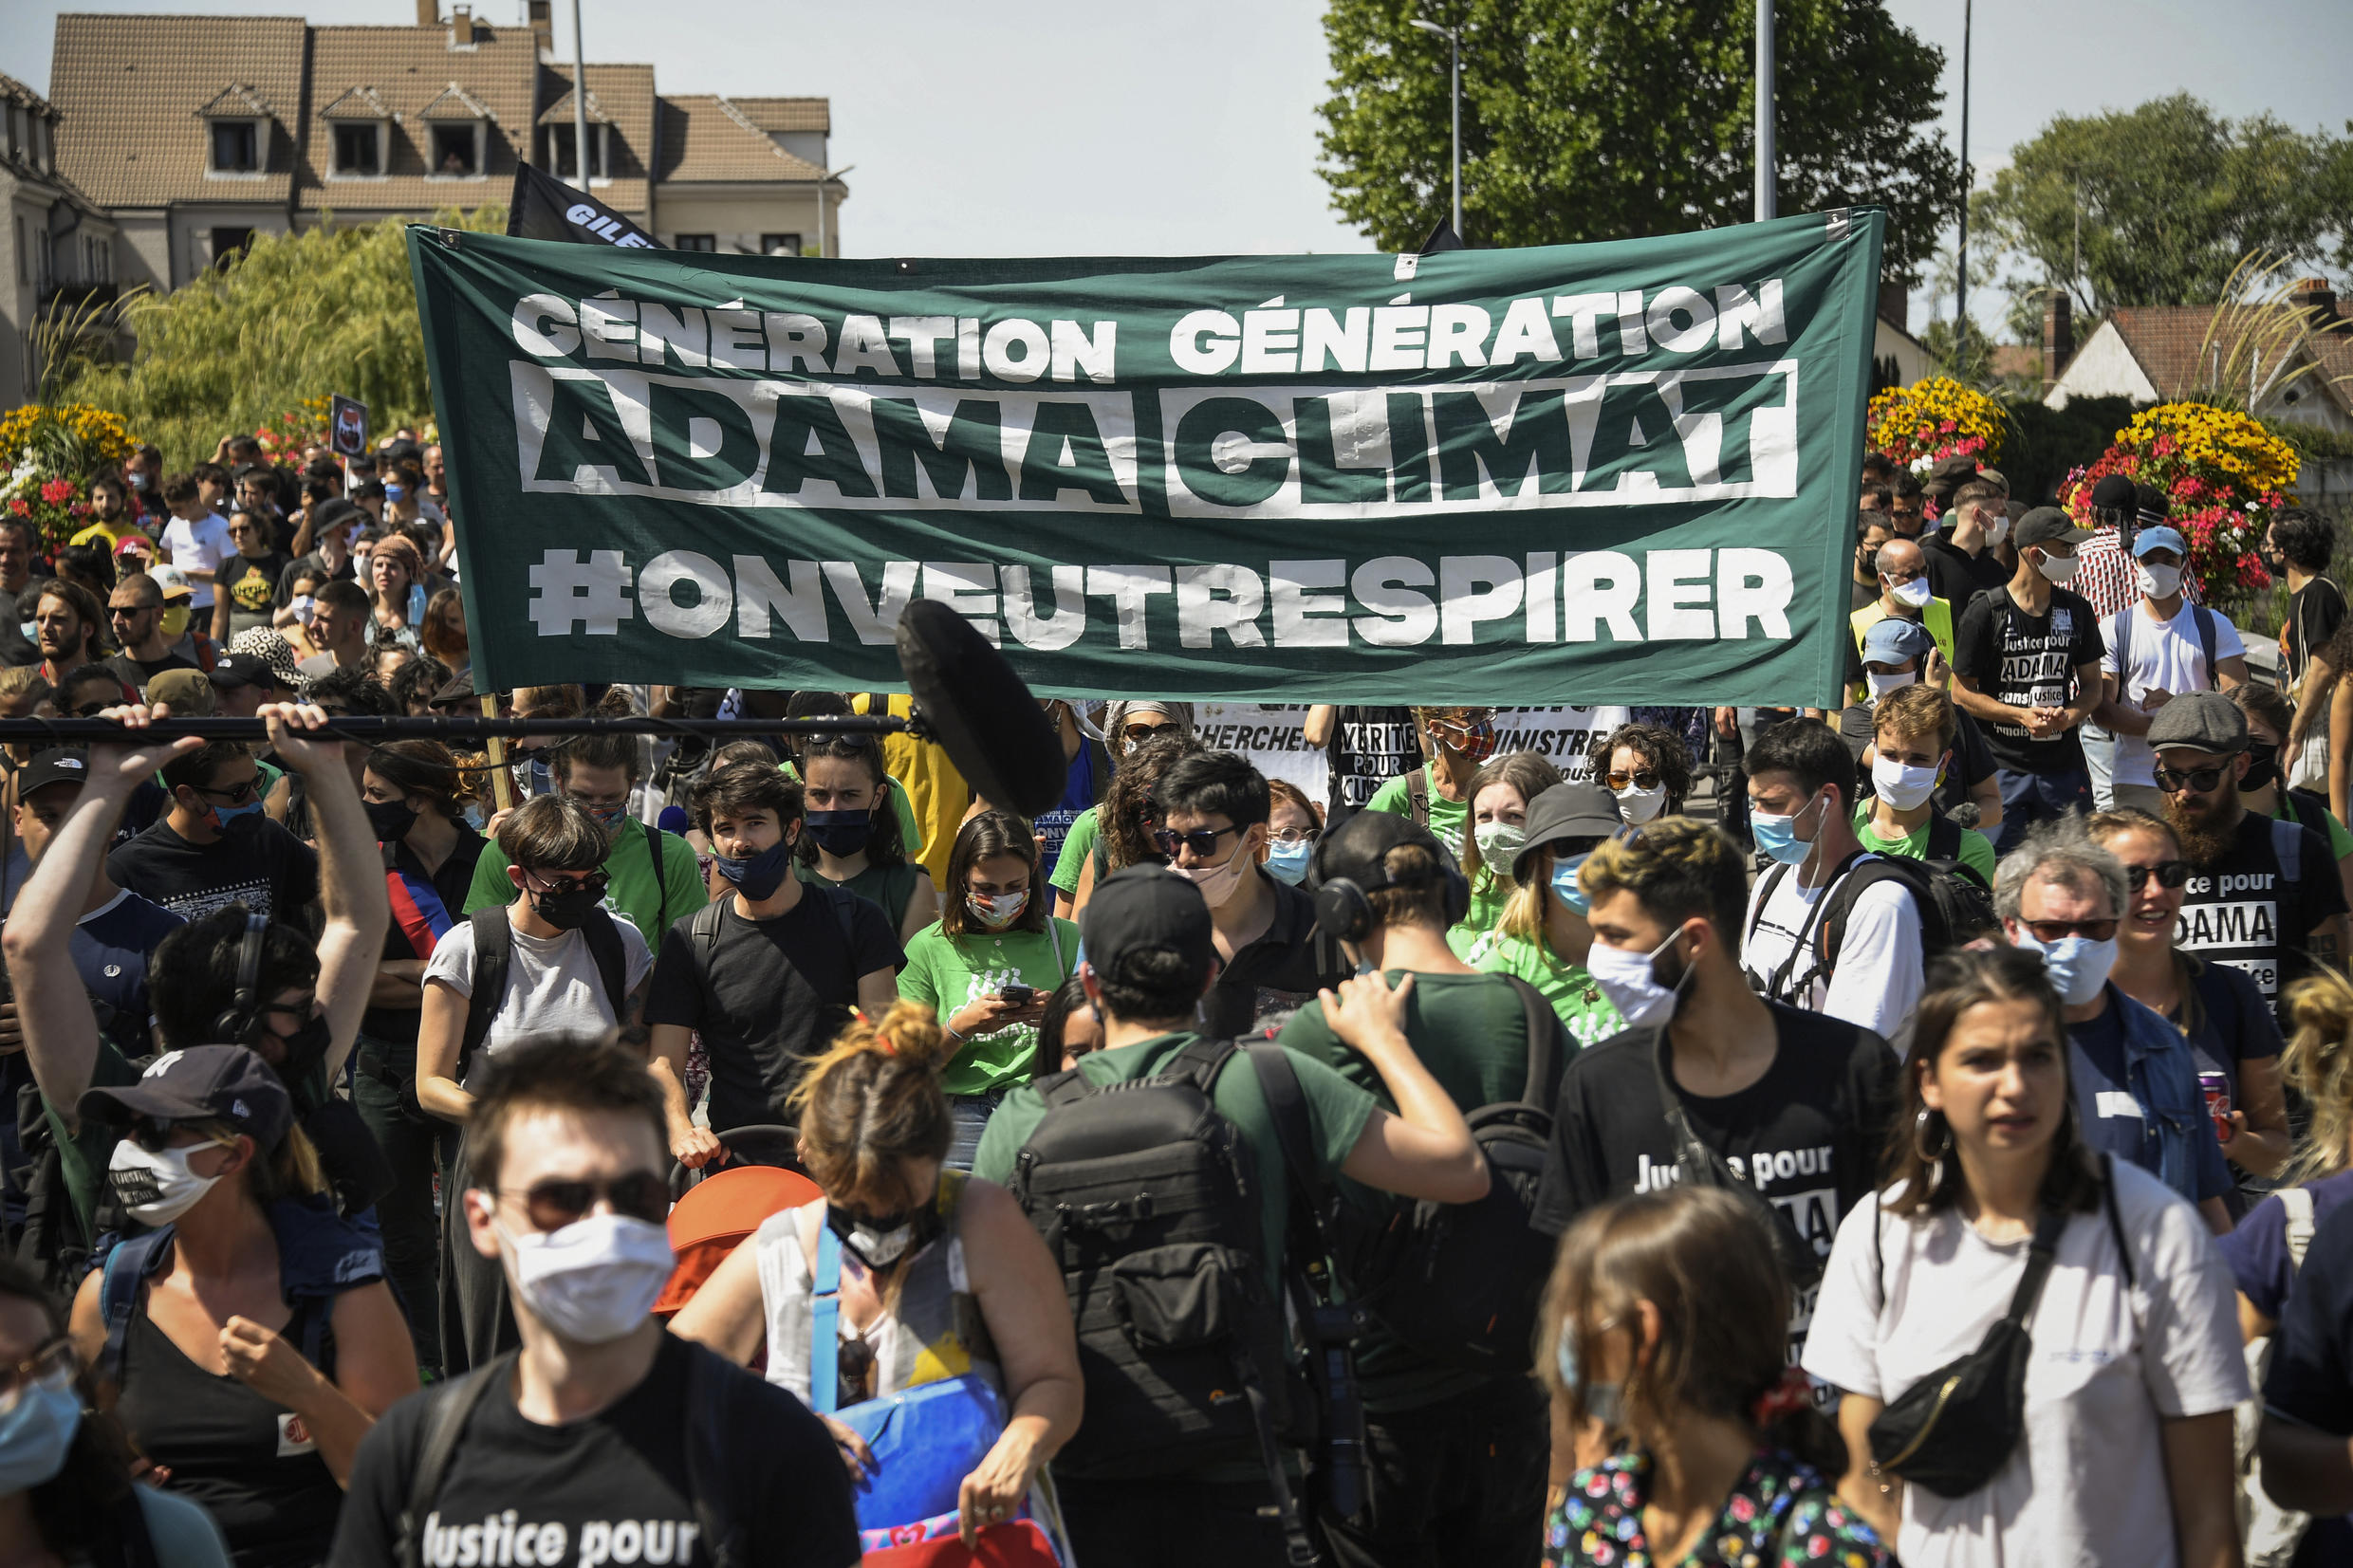 Climate activists take part in a rally in the Paris suburb of Beaumont-sur-Oise, on July 18, 2020, marking four years since the death in police custody of black youth Adama Traoré.